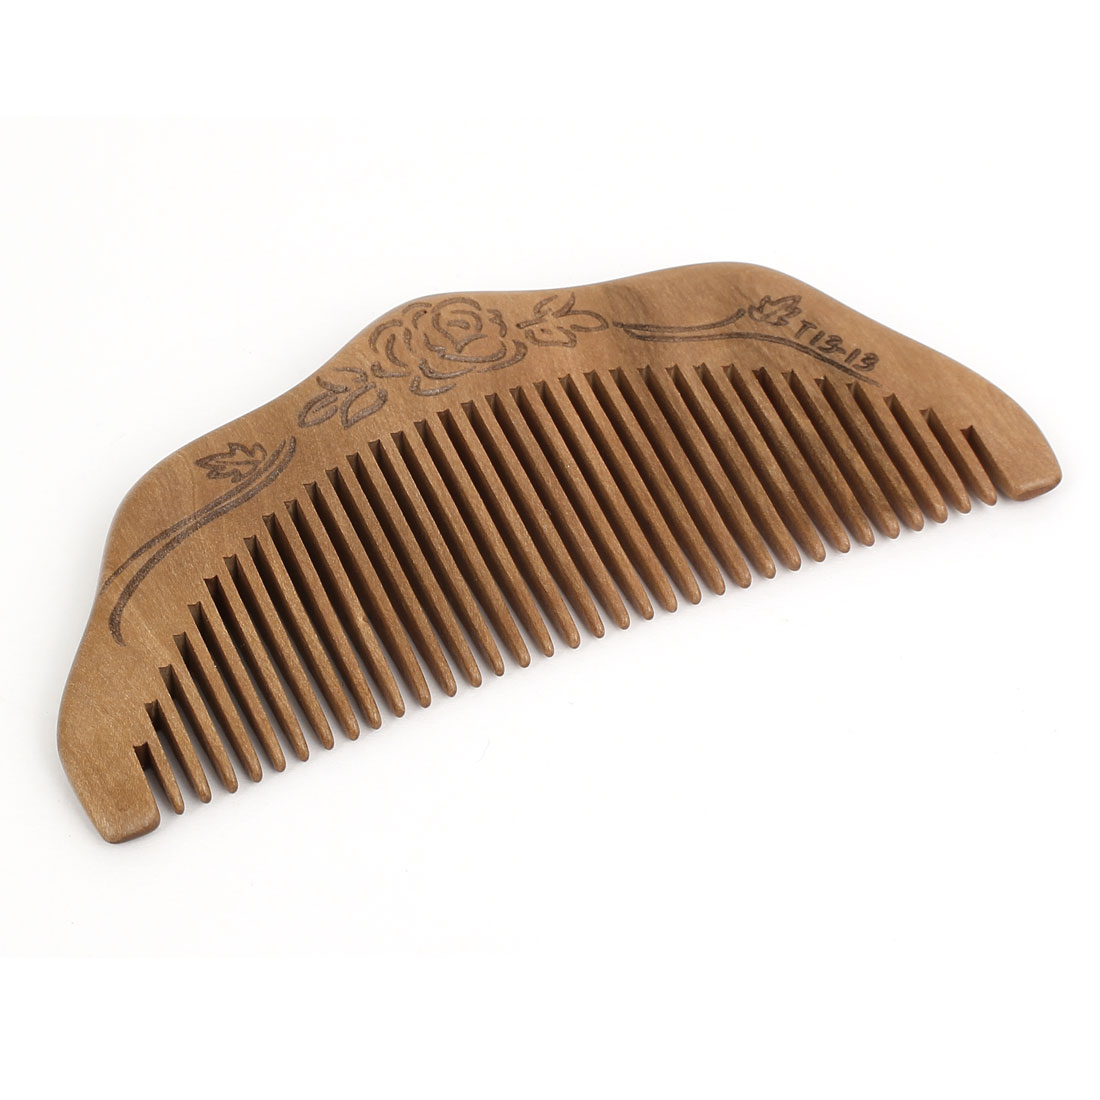 "Unisex Wooden 4.5"" Length Healthy Head Care Hand Craft Hair Comb Wood Color"